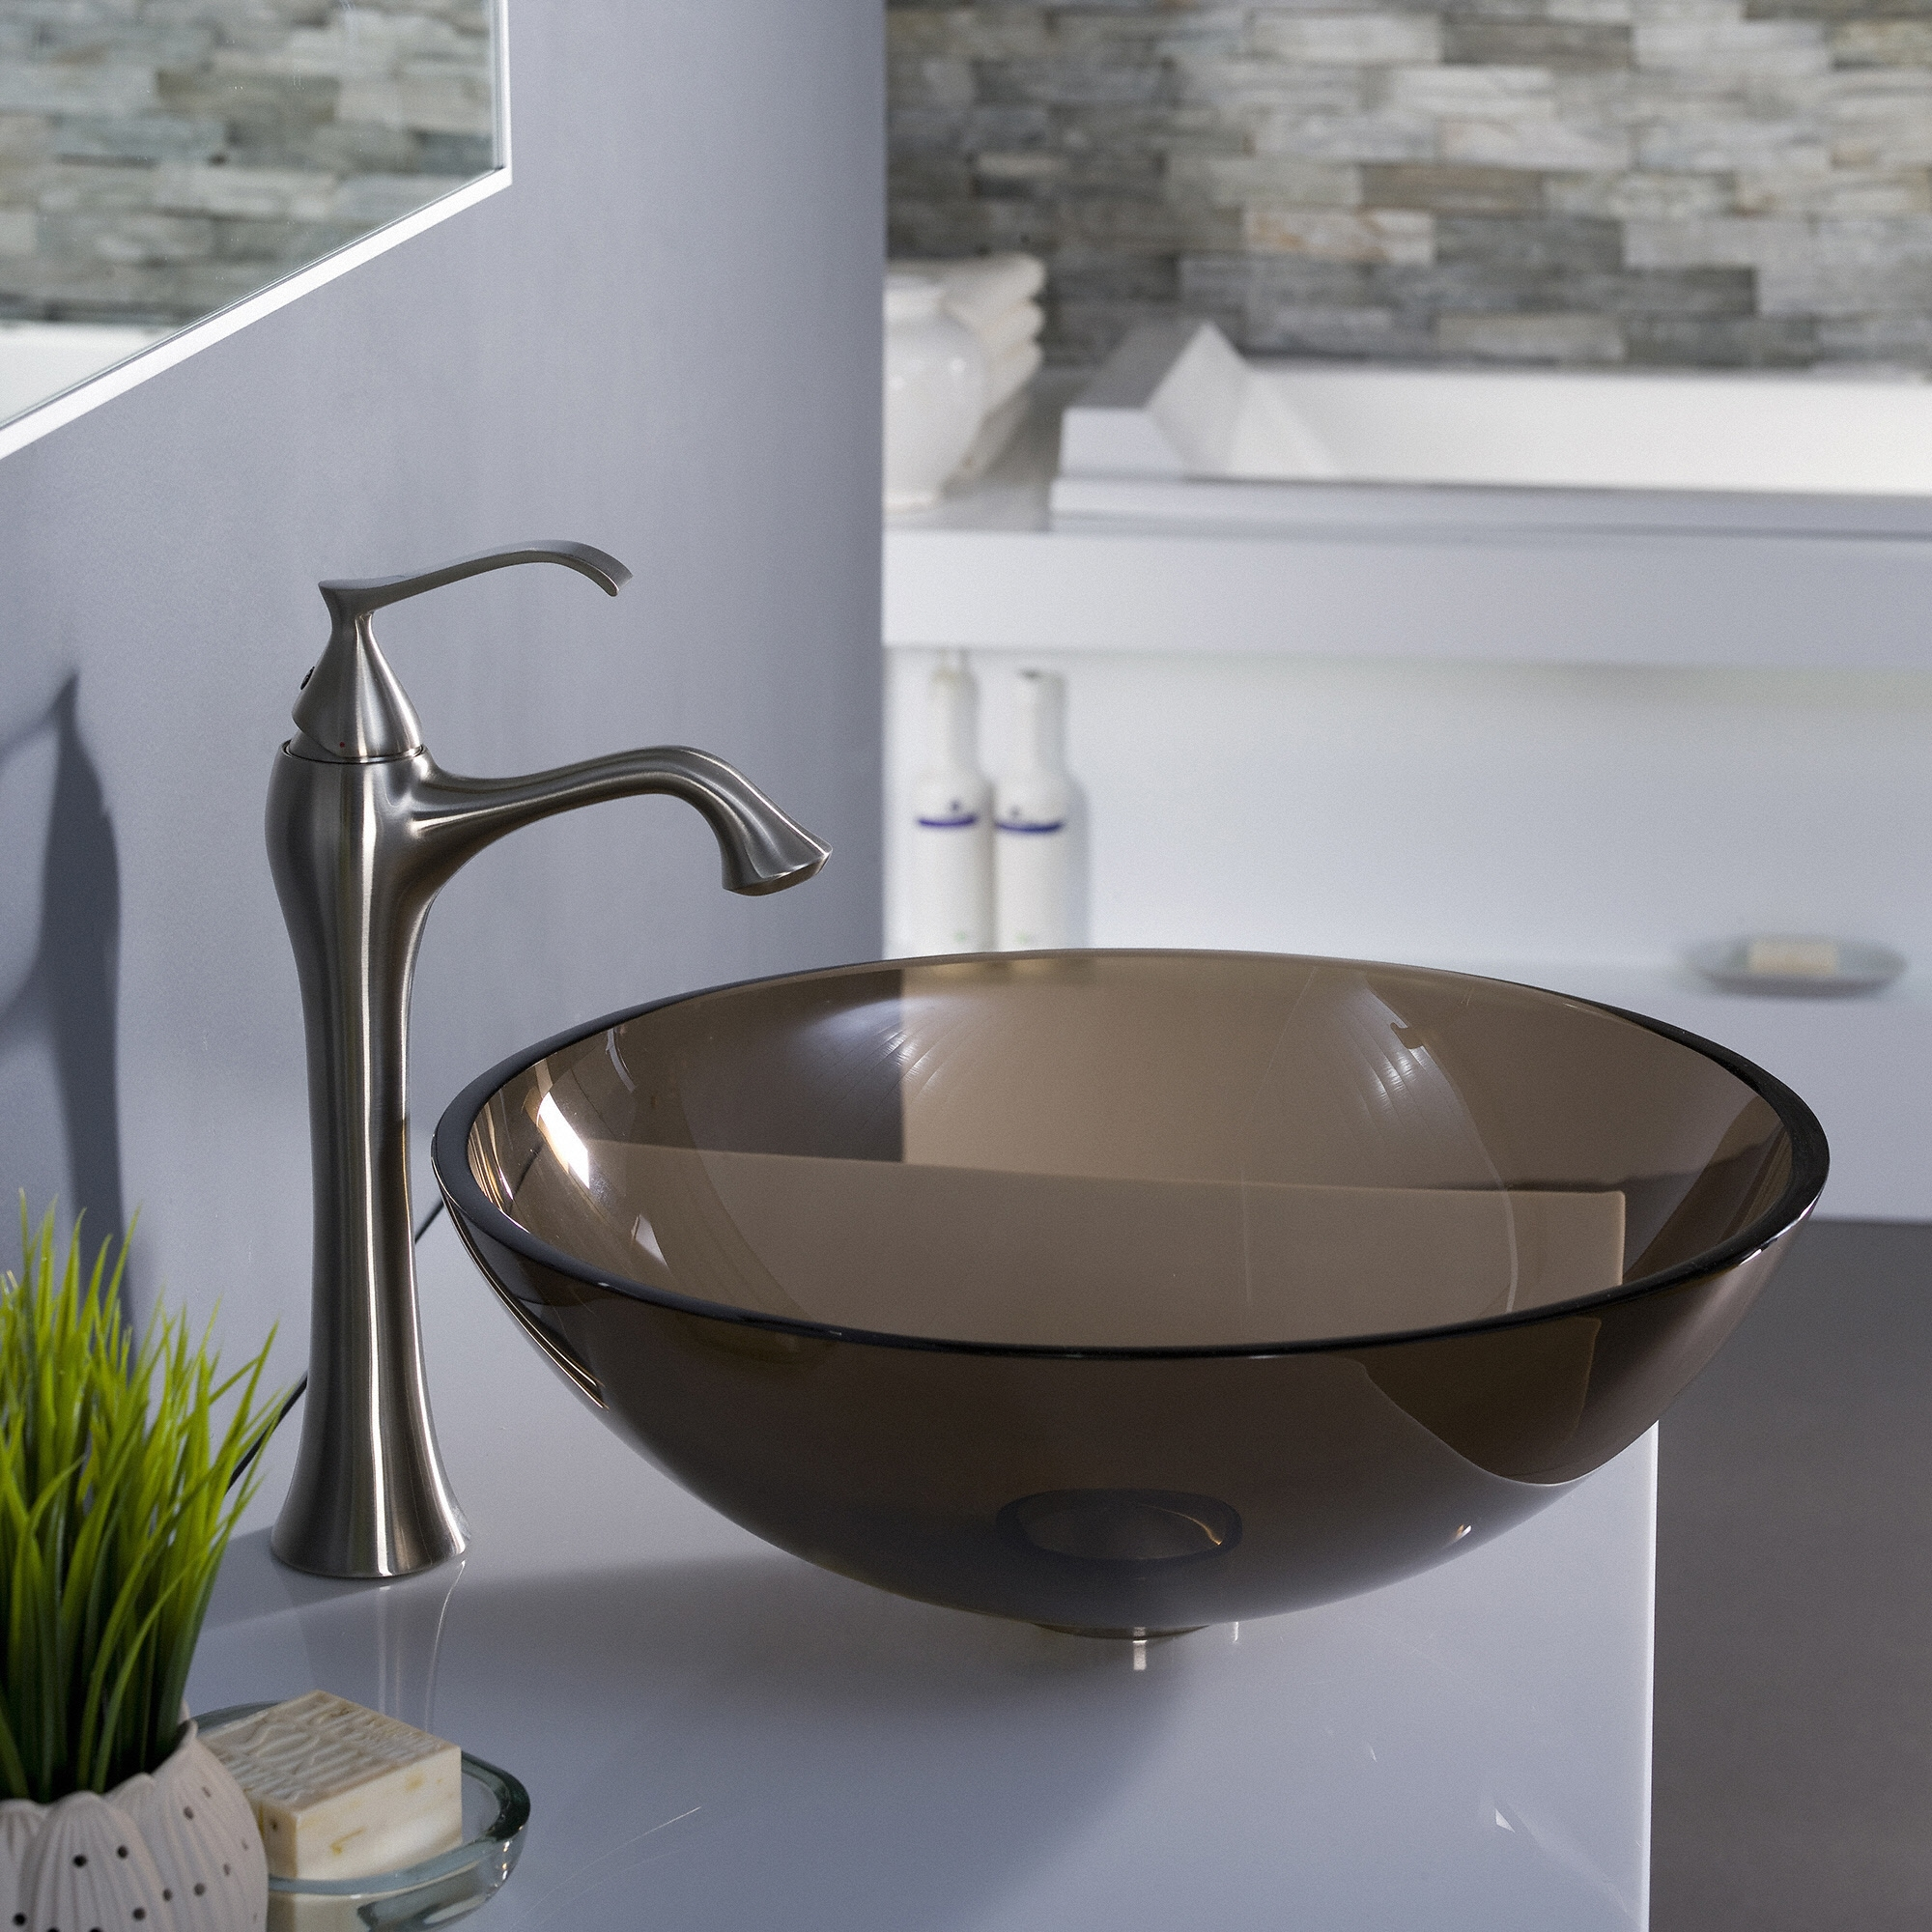 Kraus Ventus Single Hole Handle Vessel Bathroom Faucet On Free Shipping Today 6473125